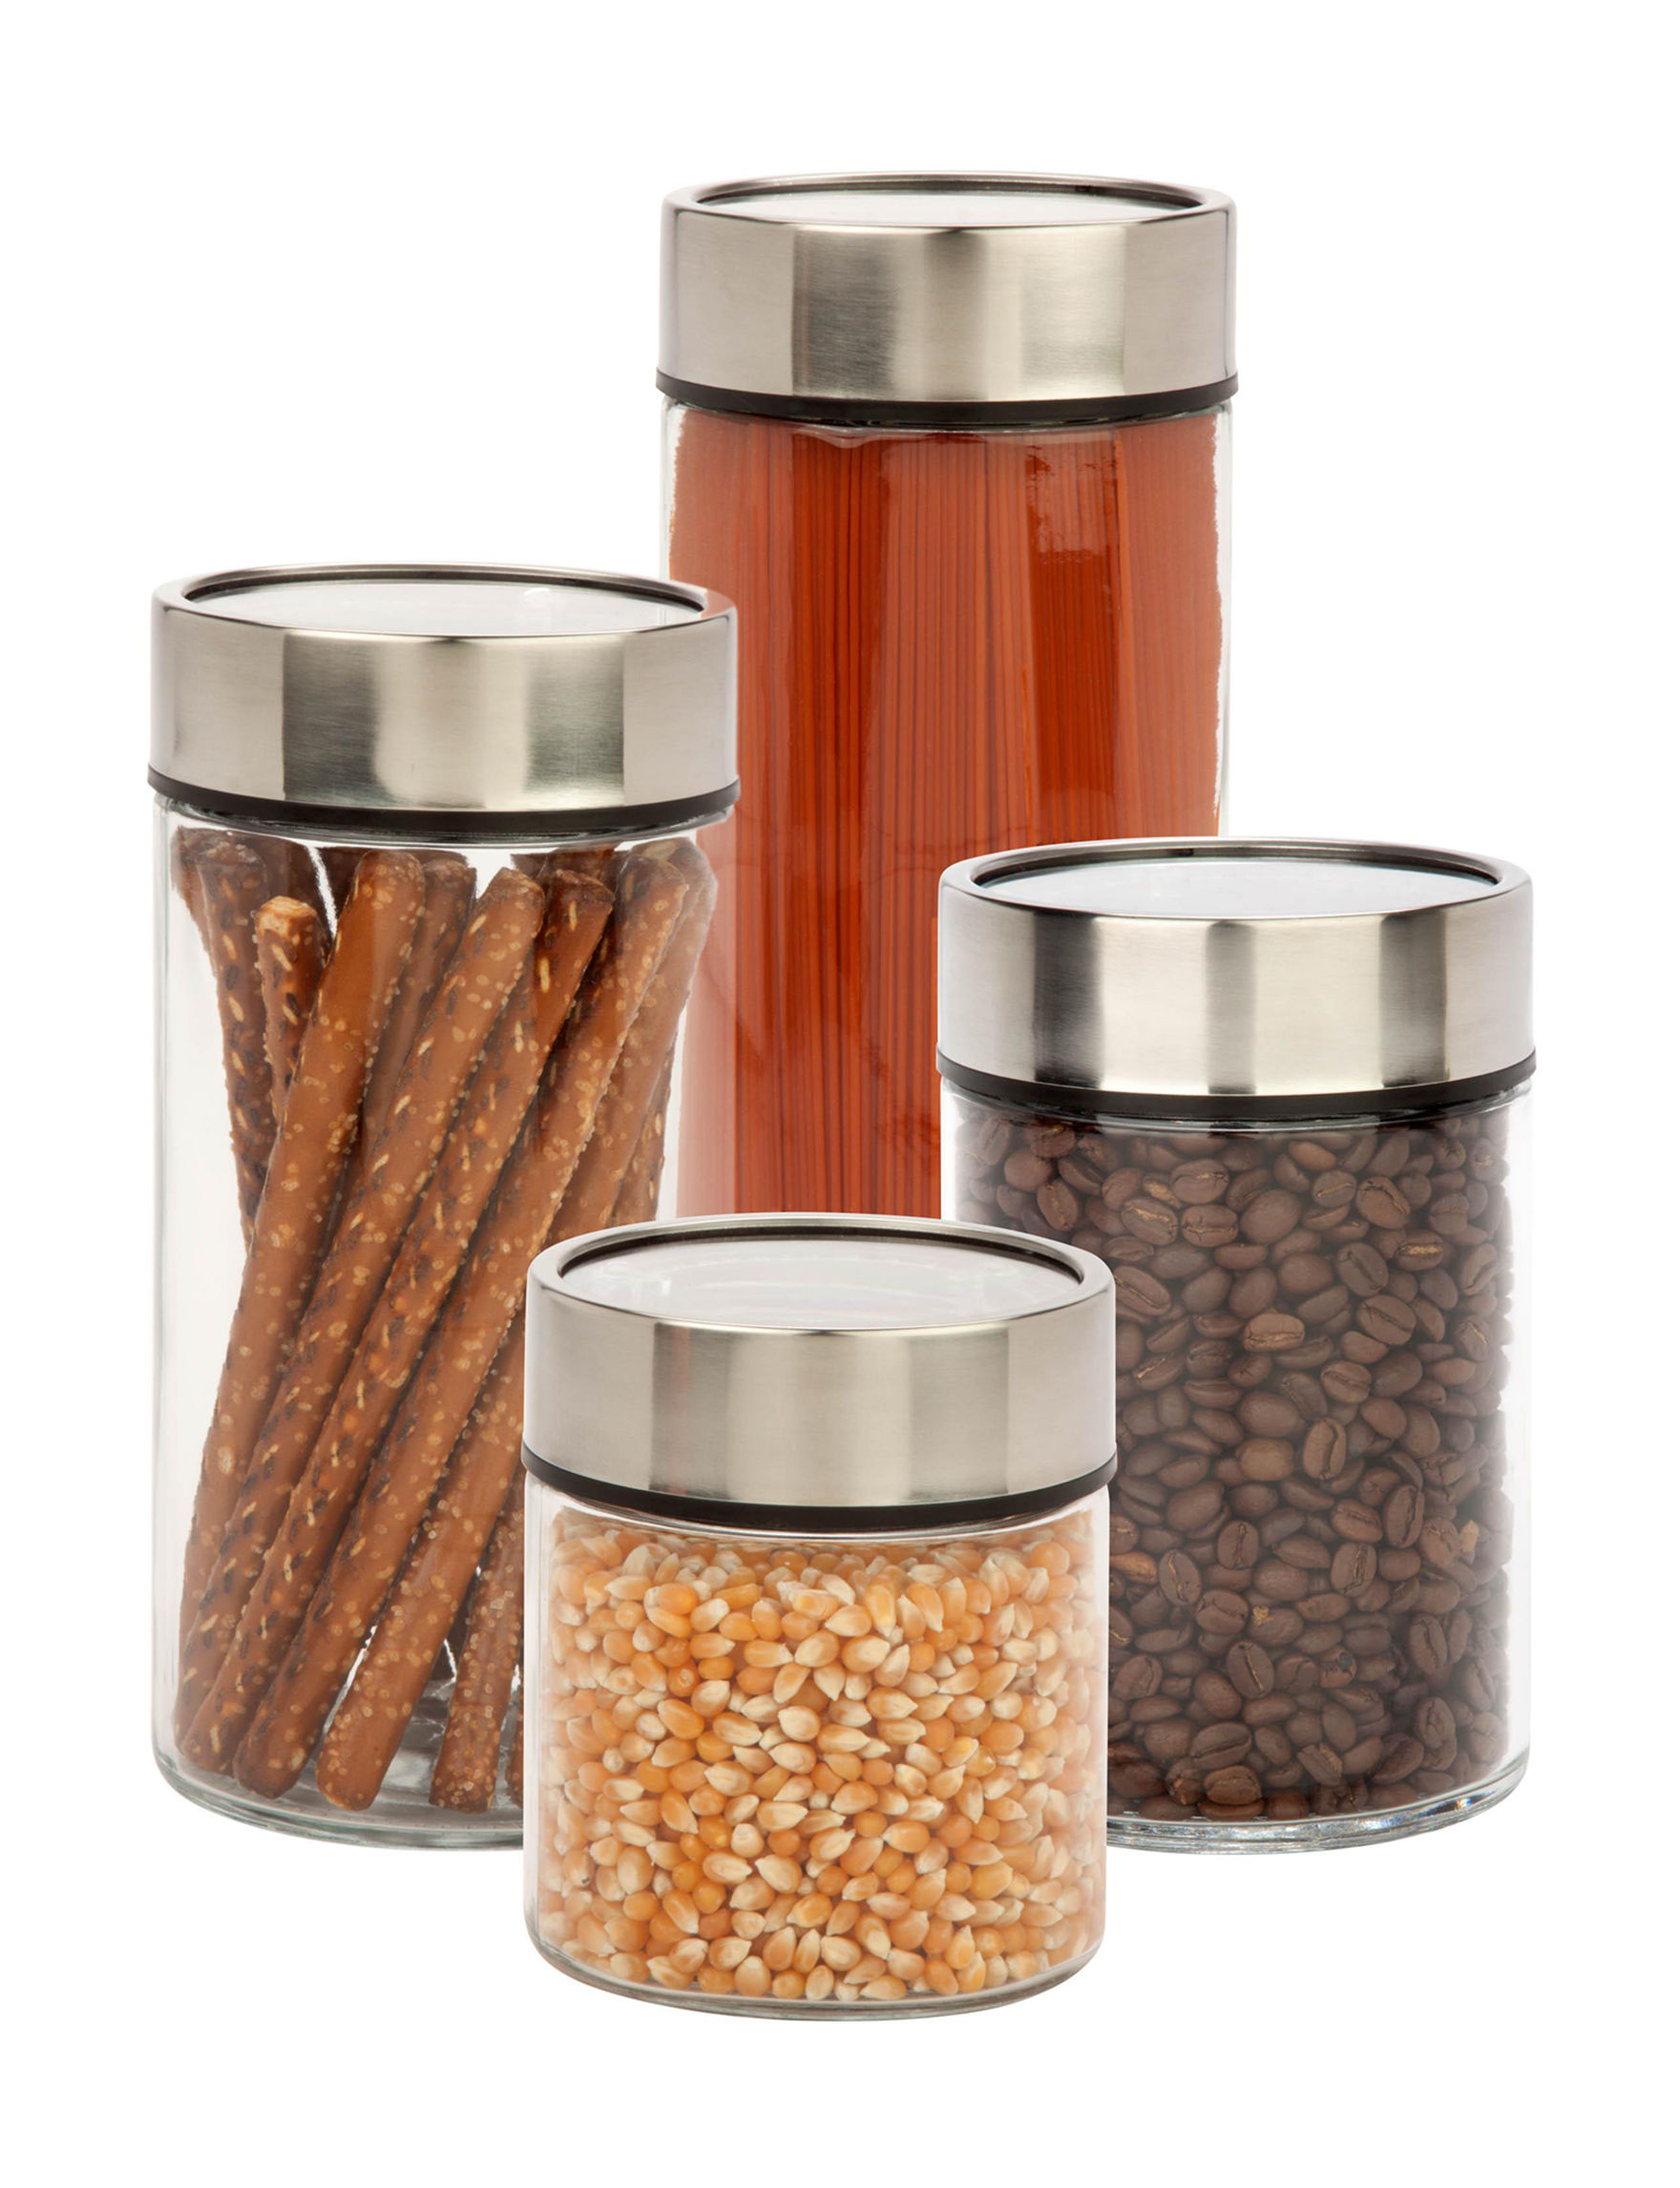 Honey-Can-Do International Clear Canister Sets Kitchen Storage & Organization